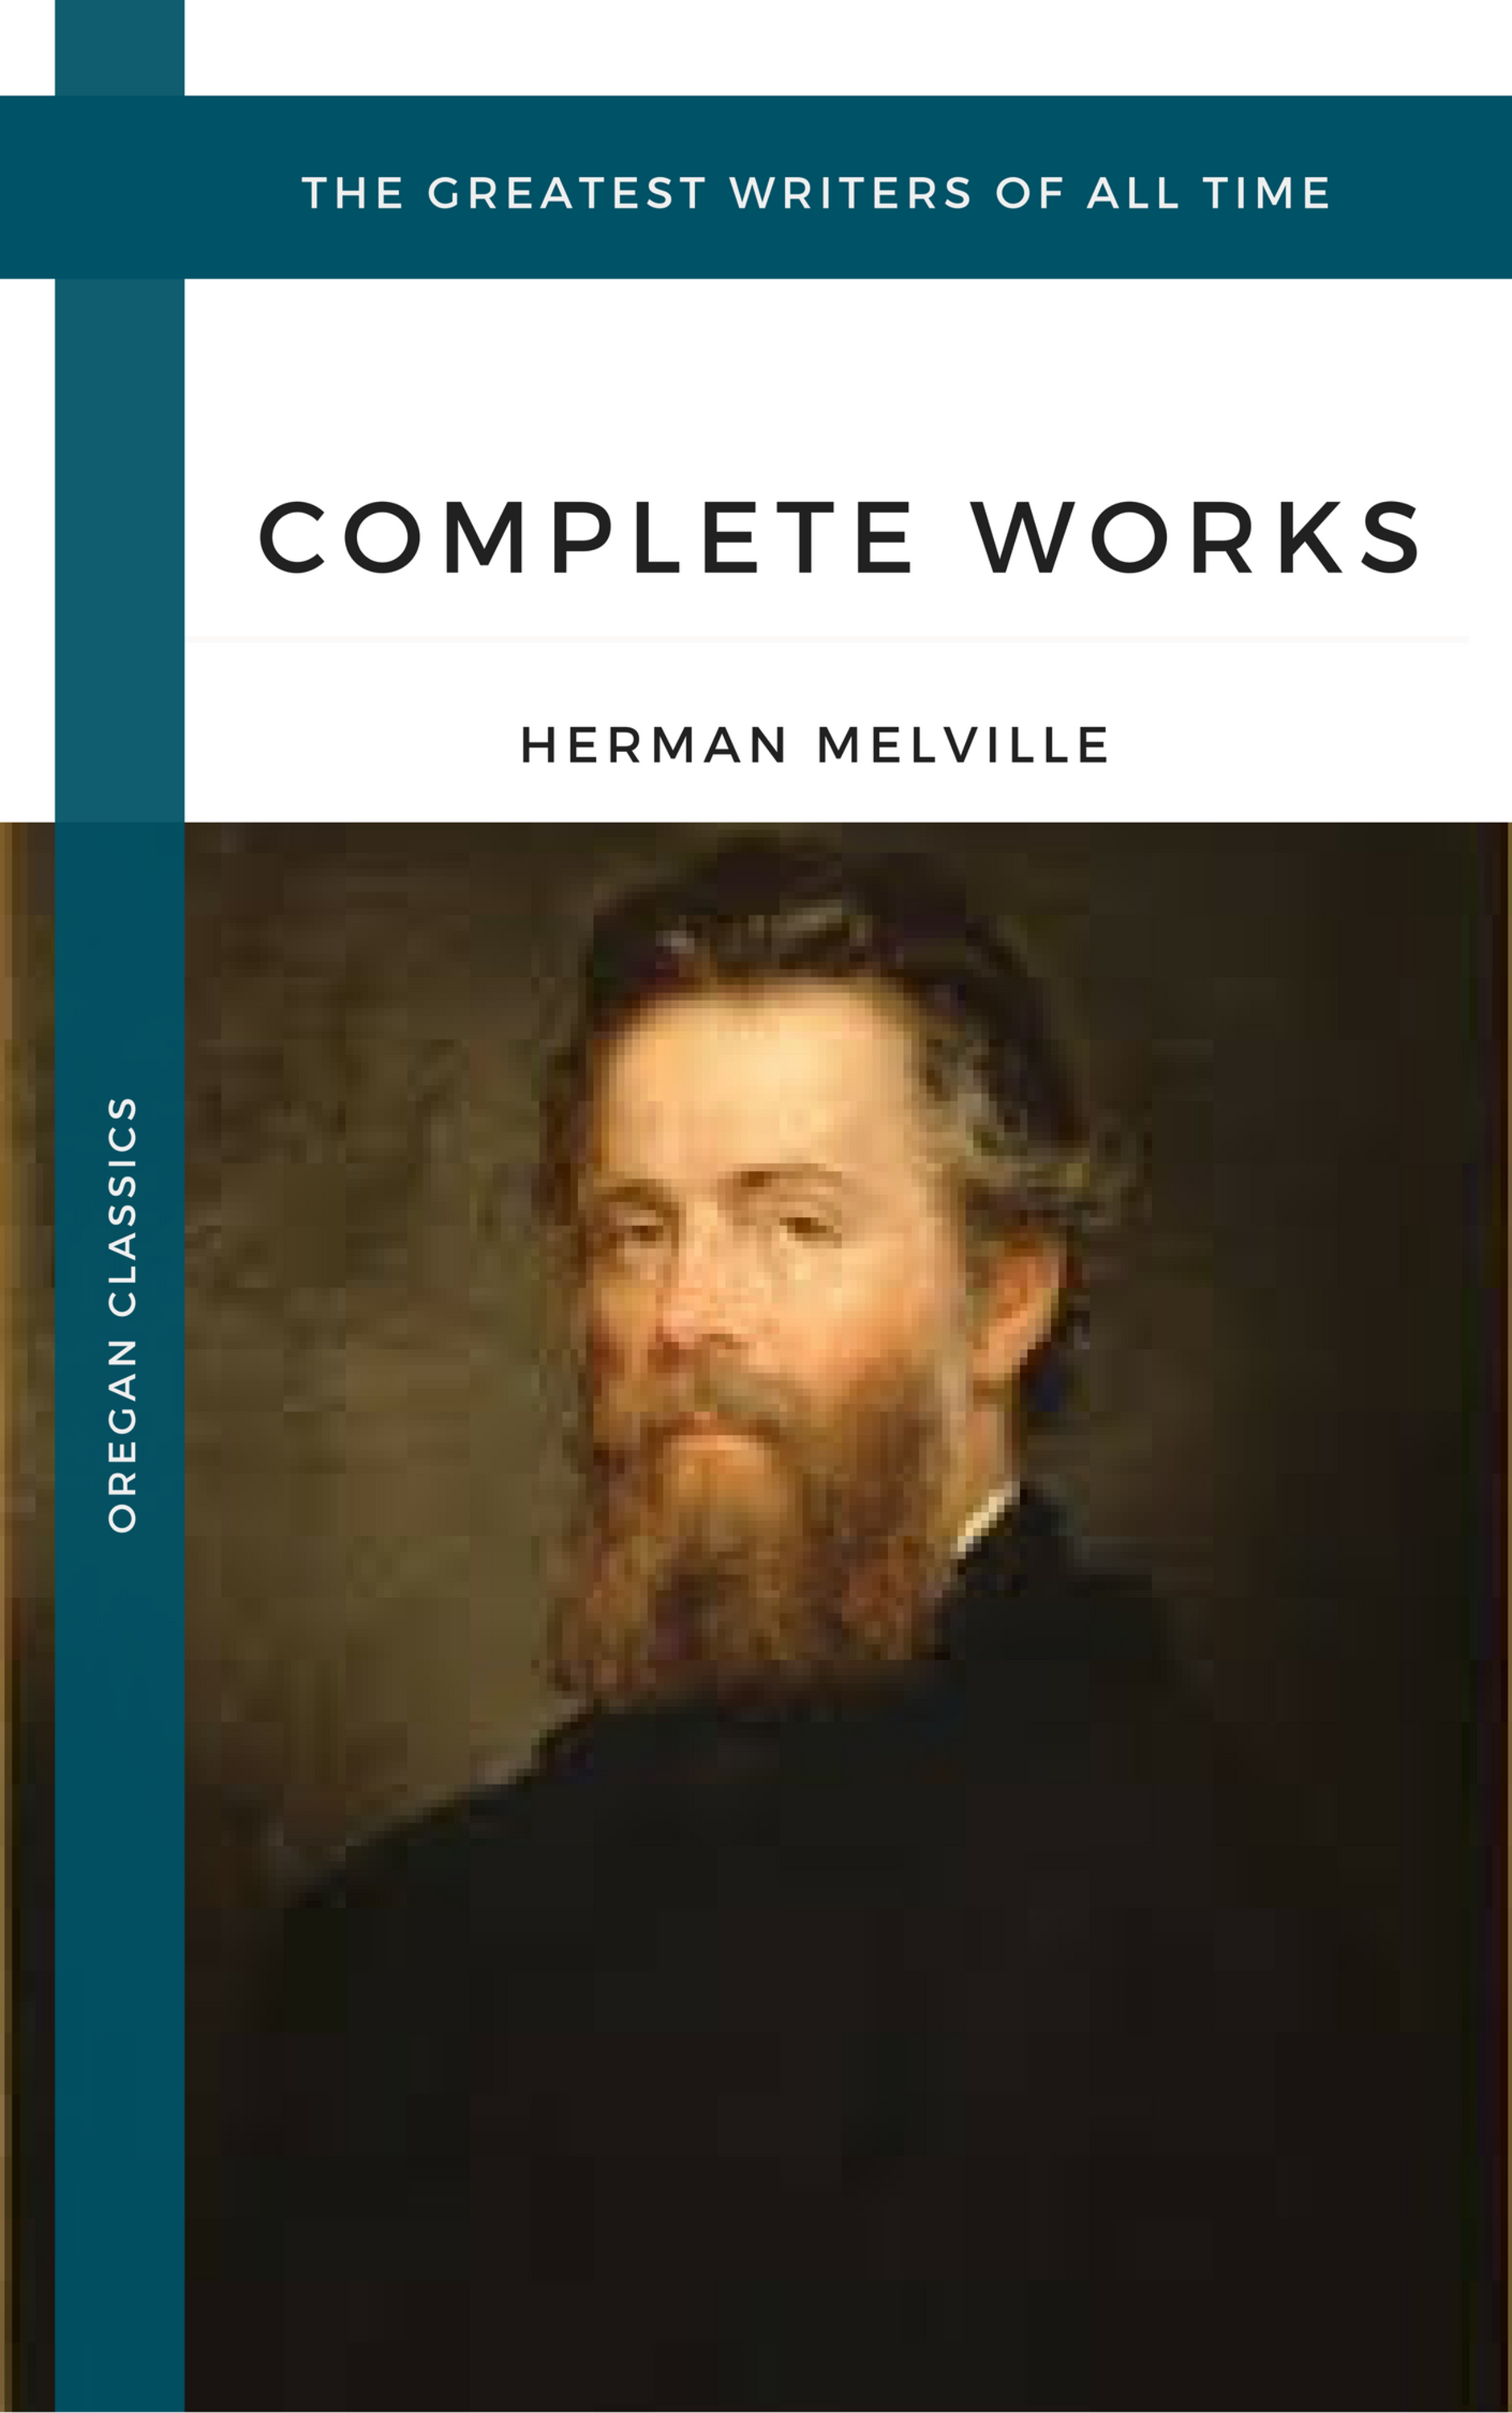 Herman Melville Melville Herman: The Complete works (Oregan Classics) (The Greatest Writers of All Time) melville herman the apple tree table and other sketches